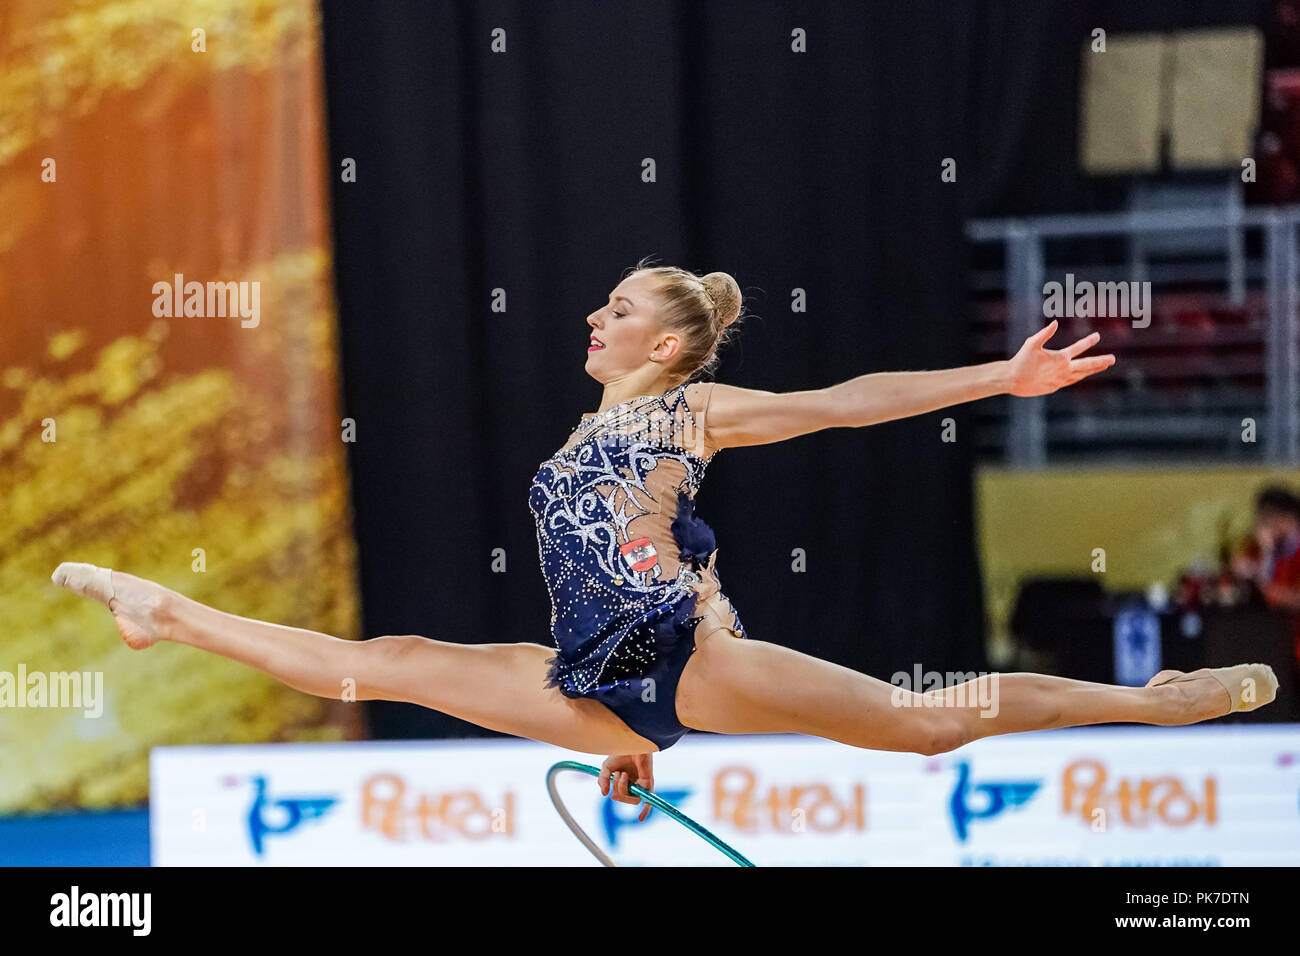 Sofia, Turkey. September 11, 2018: Julia Meder of  Austria during Rhythmic Gymnastics World Championships at the Arena Armeec in Sofia at the 36th FIG Rhythmic Gymnastics World Championships. Ulrik Pedersen/CSM - Stock Image